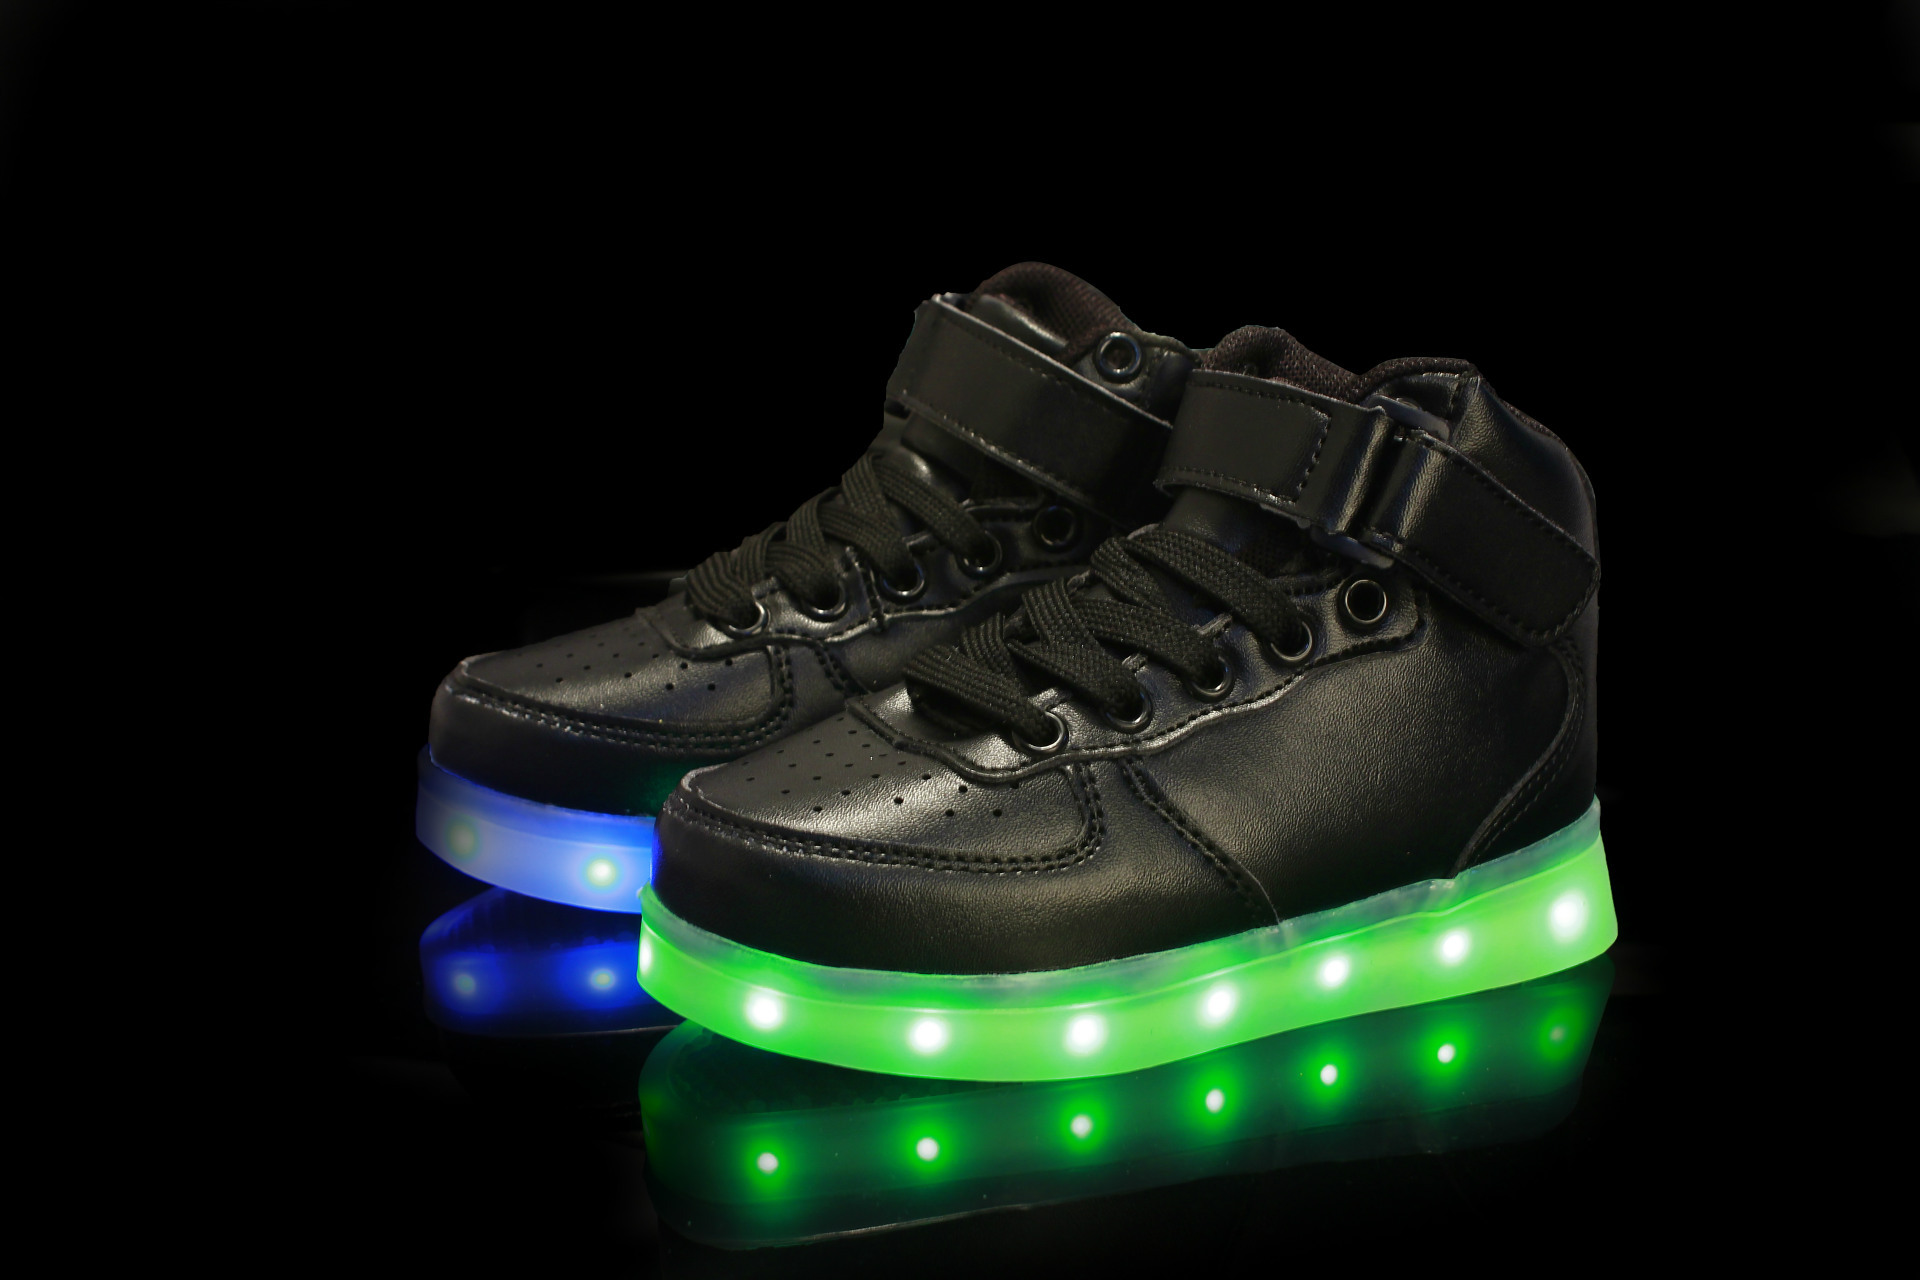 89f0bd87a Size 25 37   USB Charging Basket Led High Top Children Shoes With ...